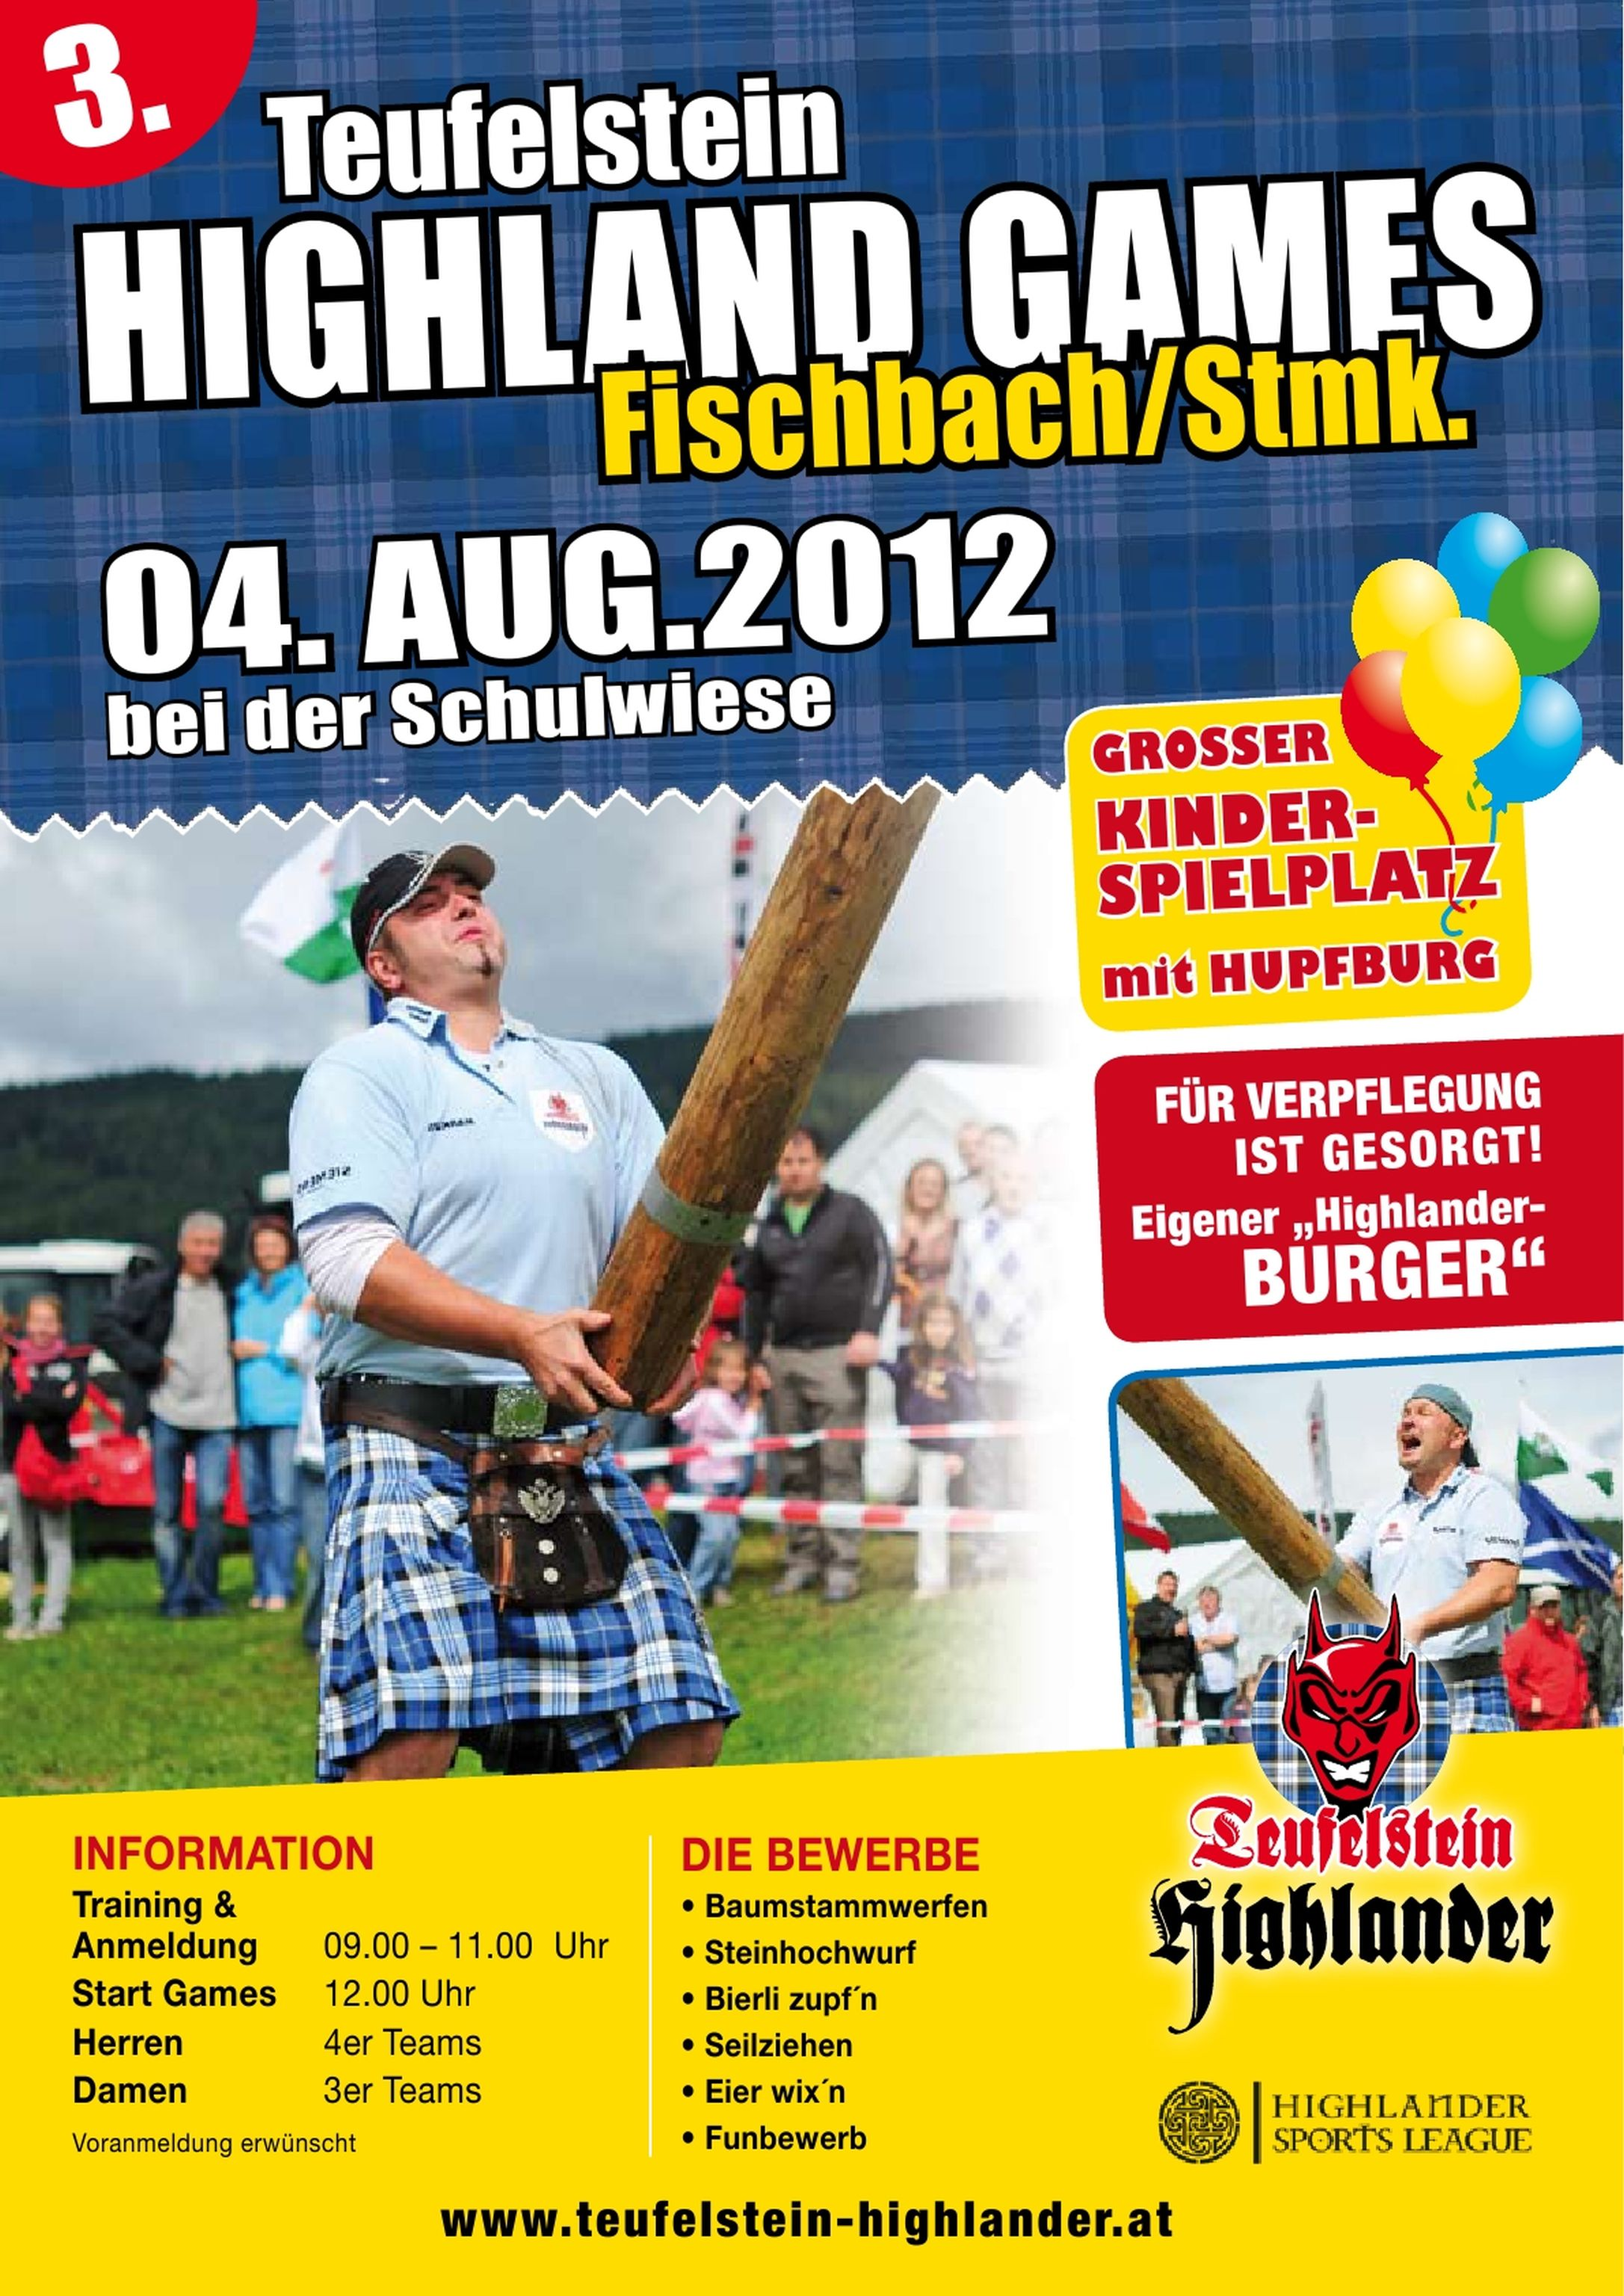 3. Highlandgames am 04.08.2012